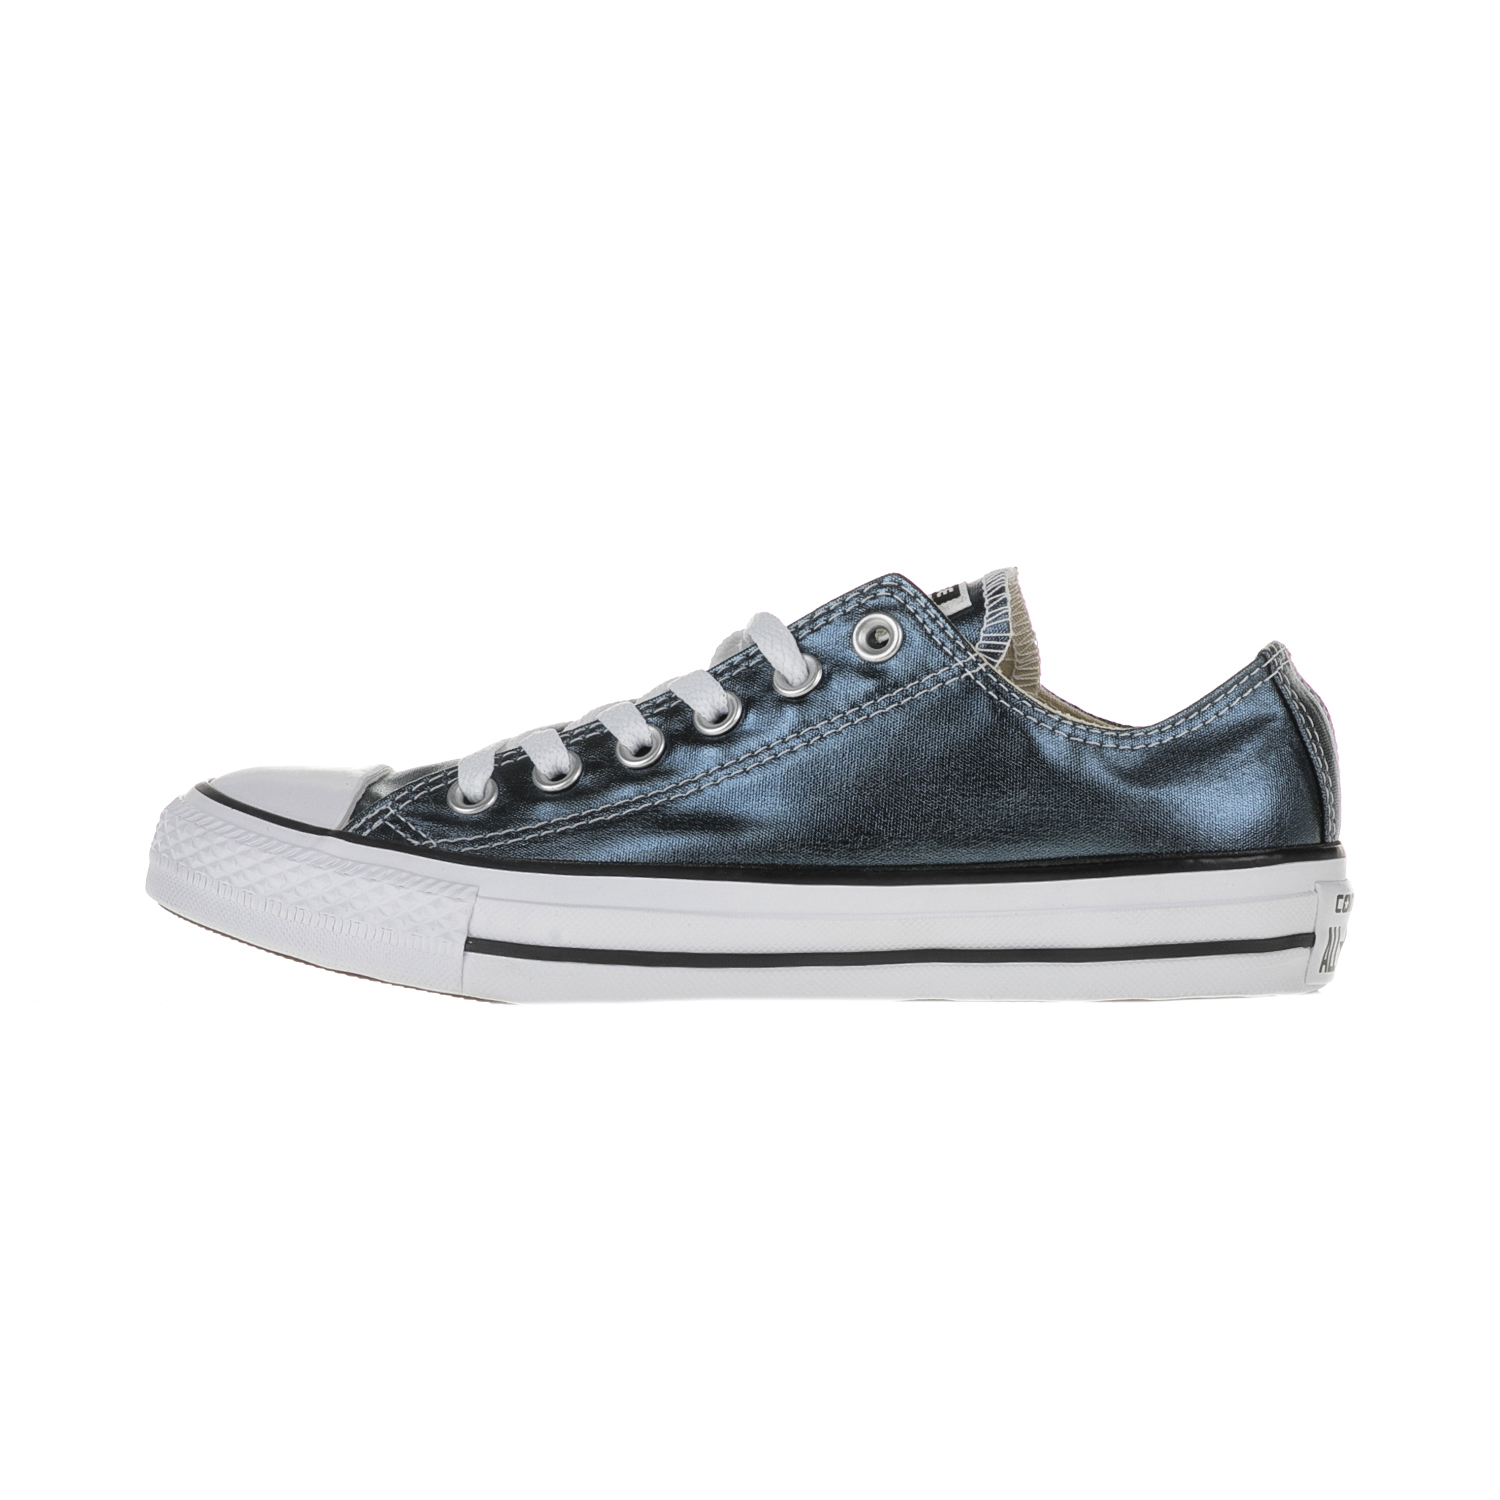 CONVERSE – Γυναικεία χαμηλά sneakers CONVERSE Chuck Taylor All Star Ox μπλε μεταλλικά